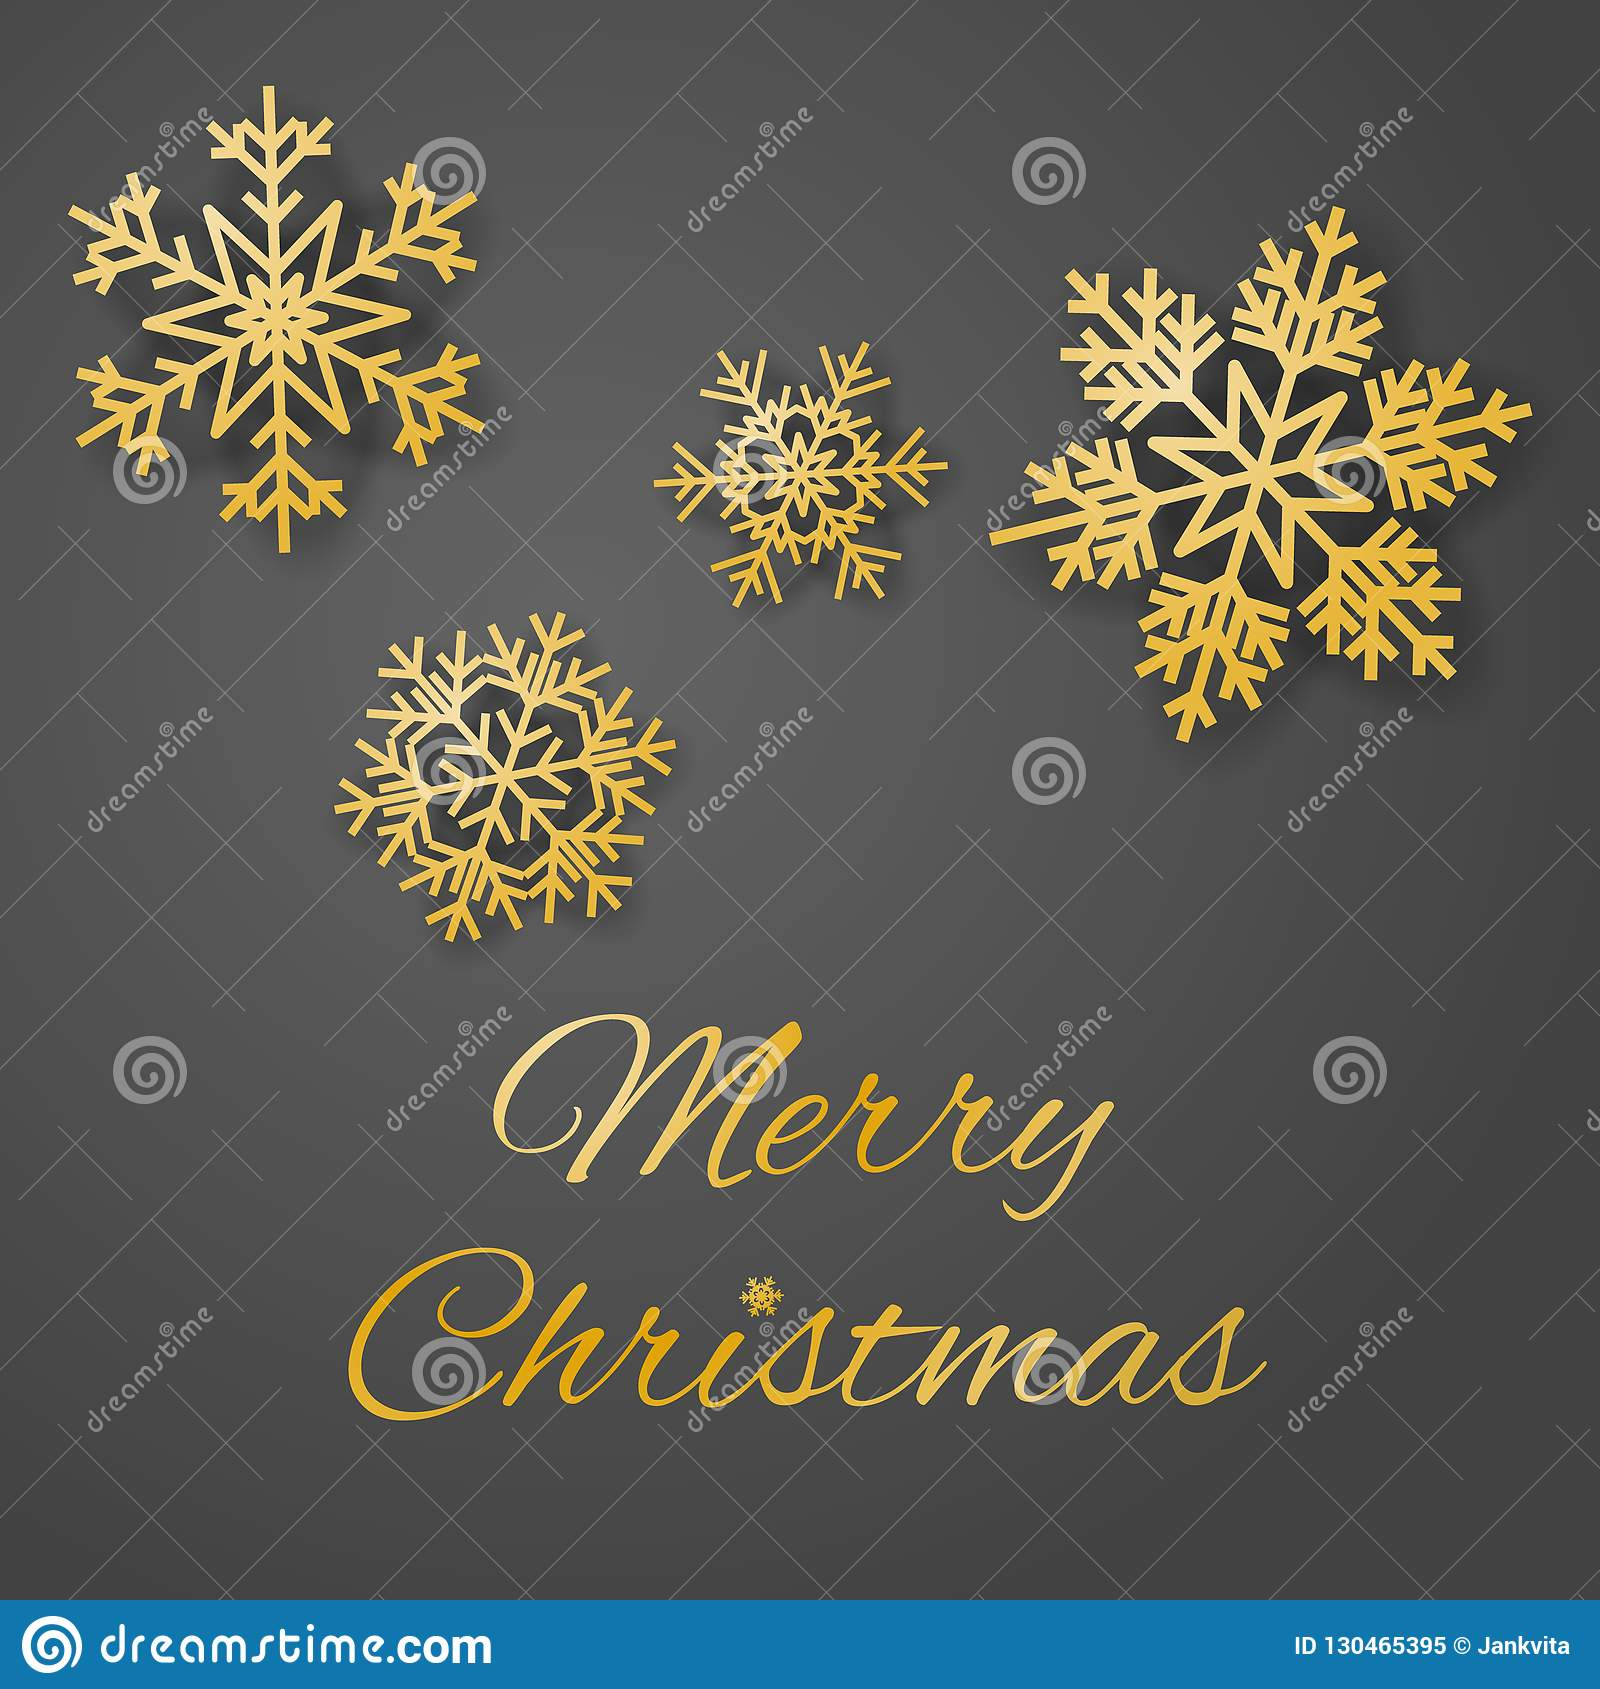 Merry Christmas luxury greeting card vector with sumptuous gold colored snowflakes on gray background